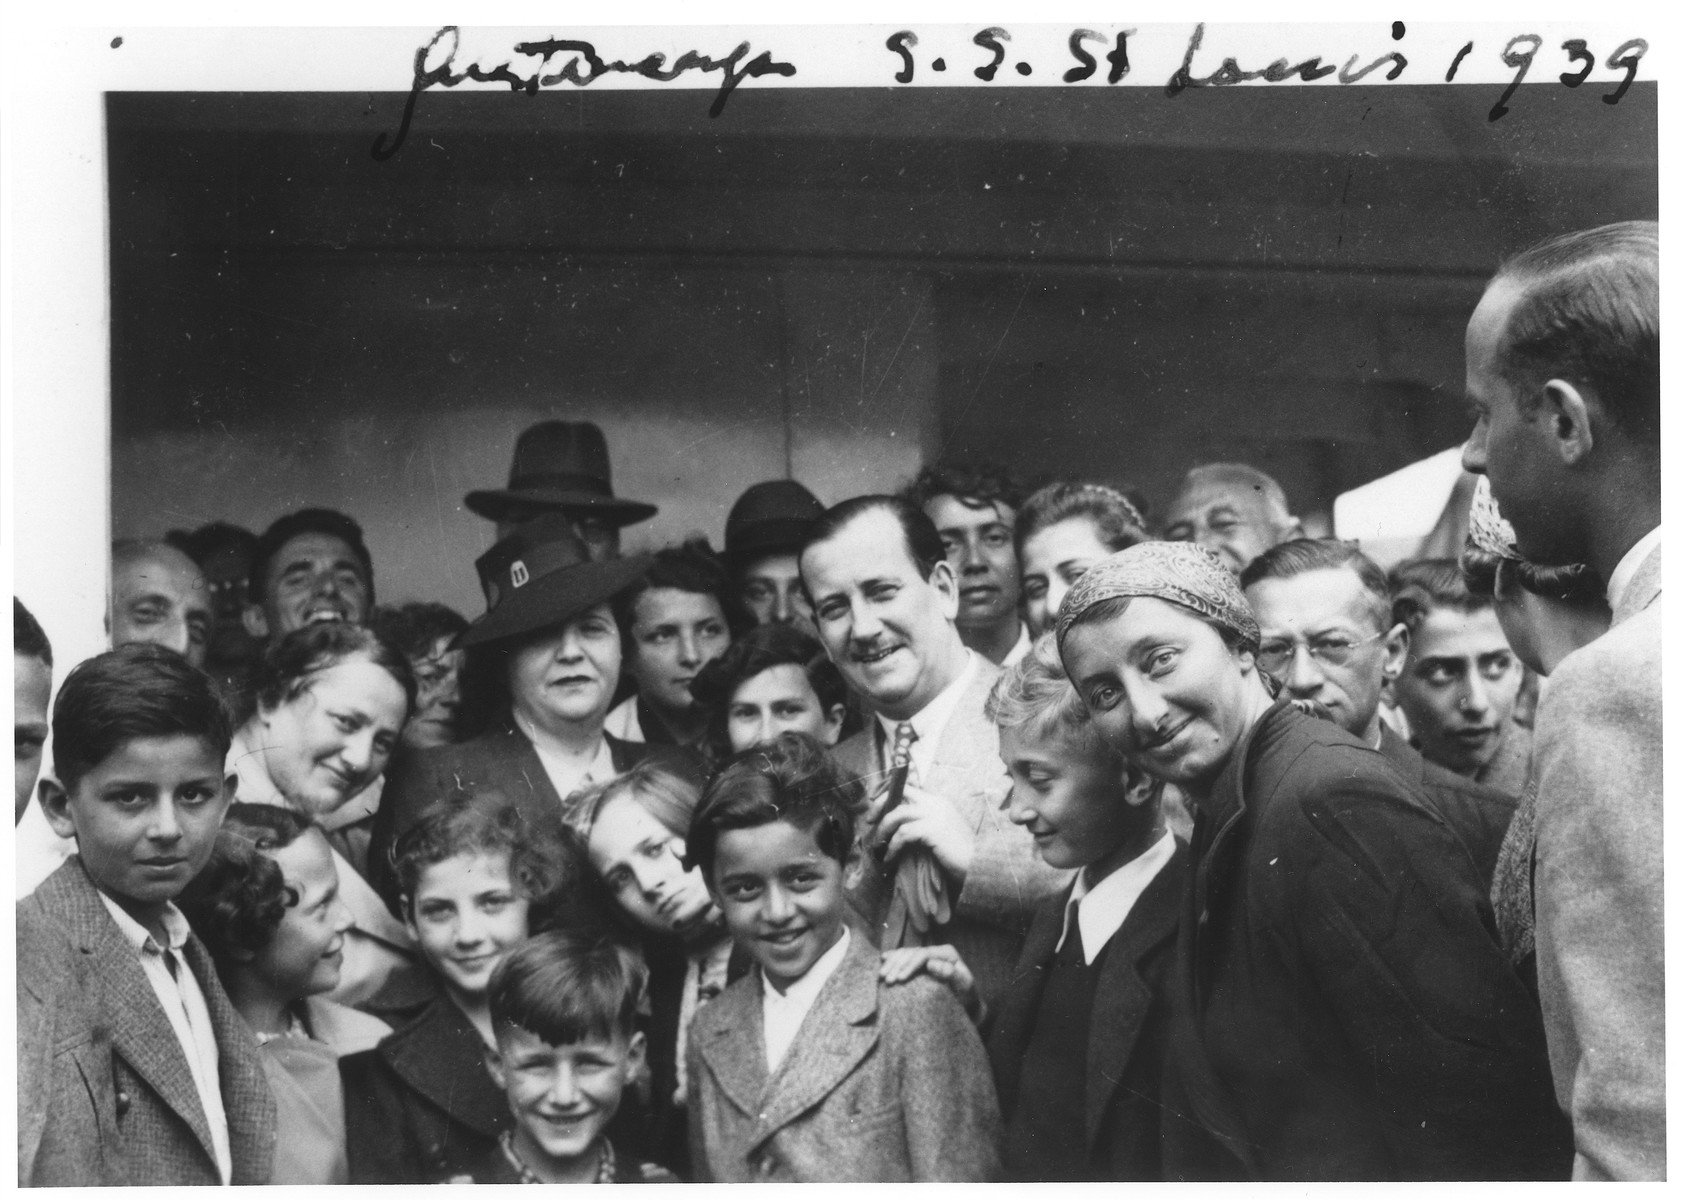 Mr. and Mrs. Morris Troper (center) pose with Jewish refugees on the deck of the MS St. Louis in the port of Antwerp.    Also pictured are Liesel Joseph, Ruth Karliner, Heinz Gallant and Windmueller.